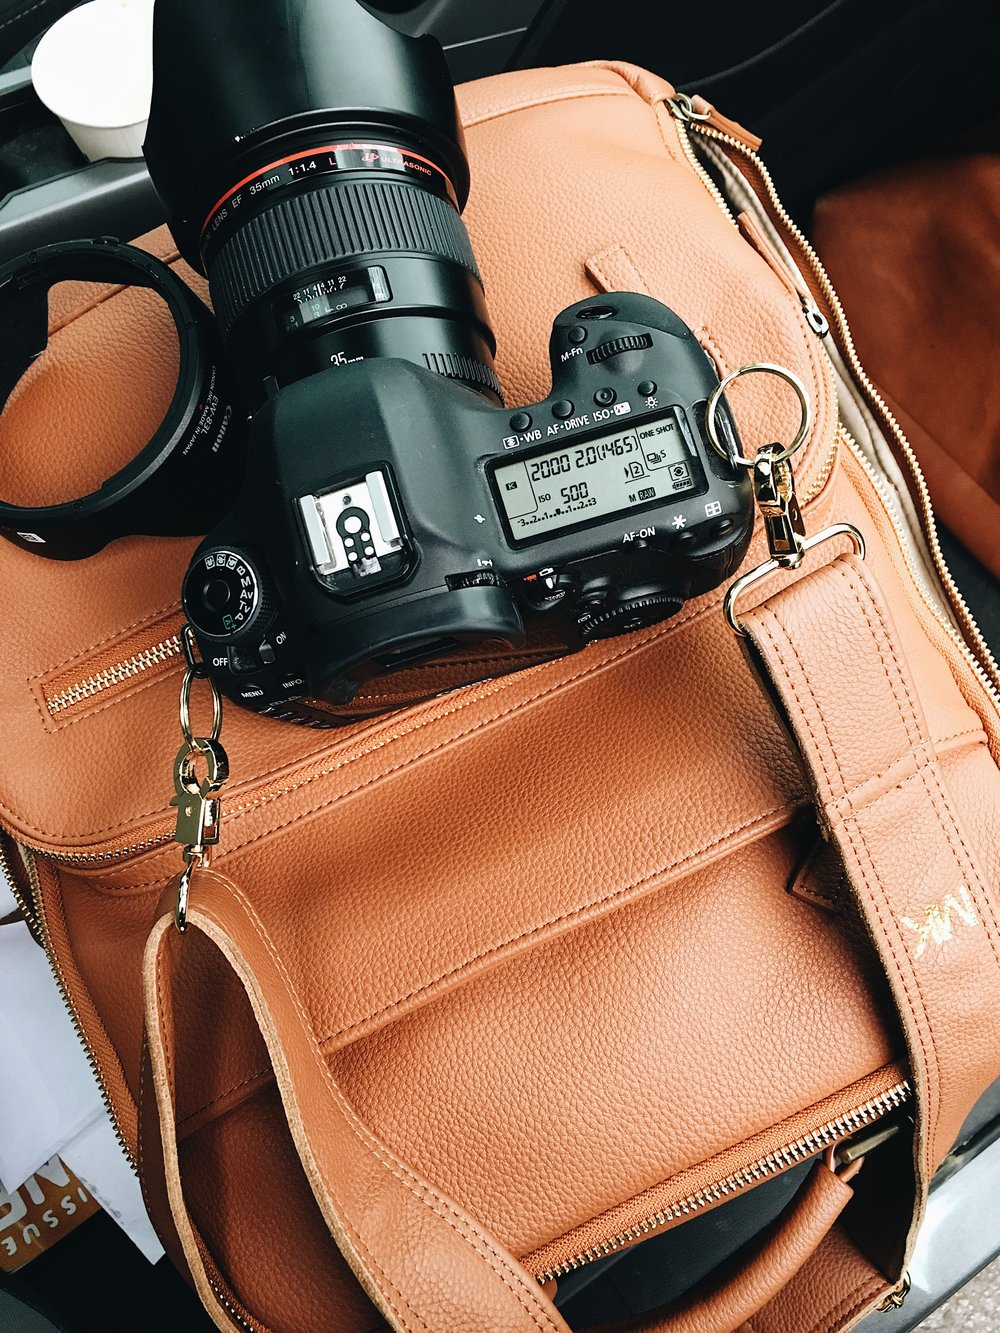 kamrette-lyra-backpack-canon-camera-liz-riden-camera-strap-mary-kate-steele-photography